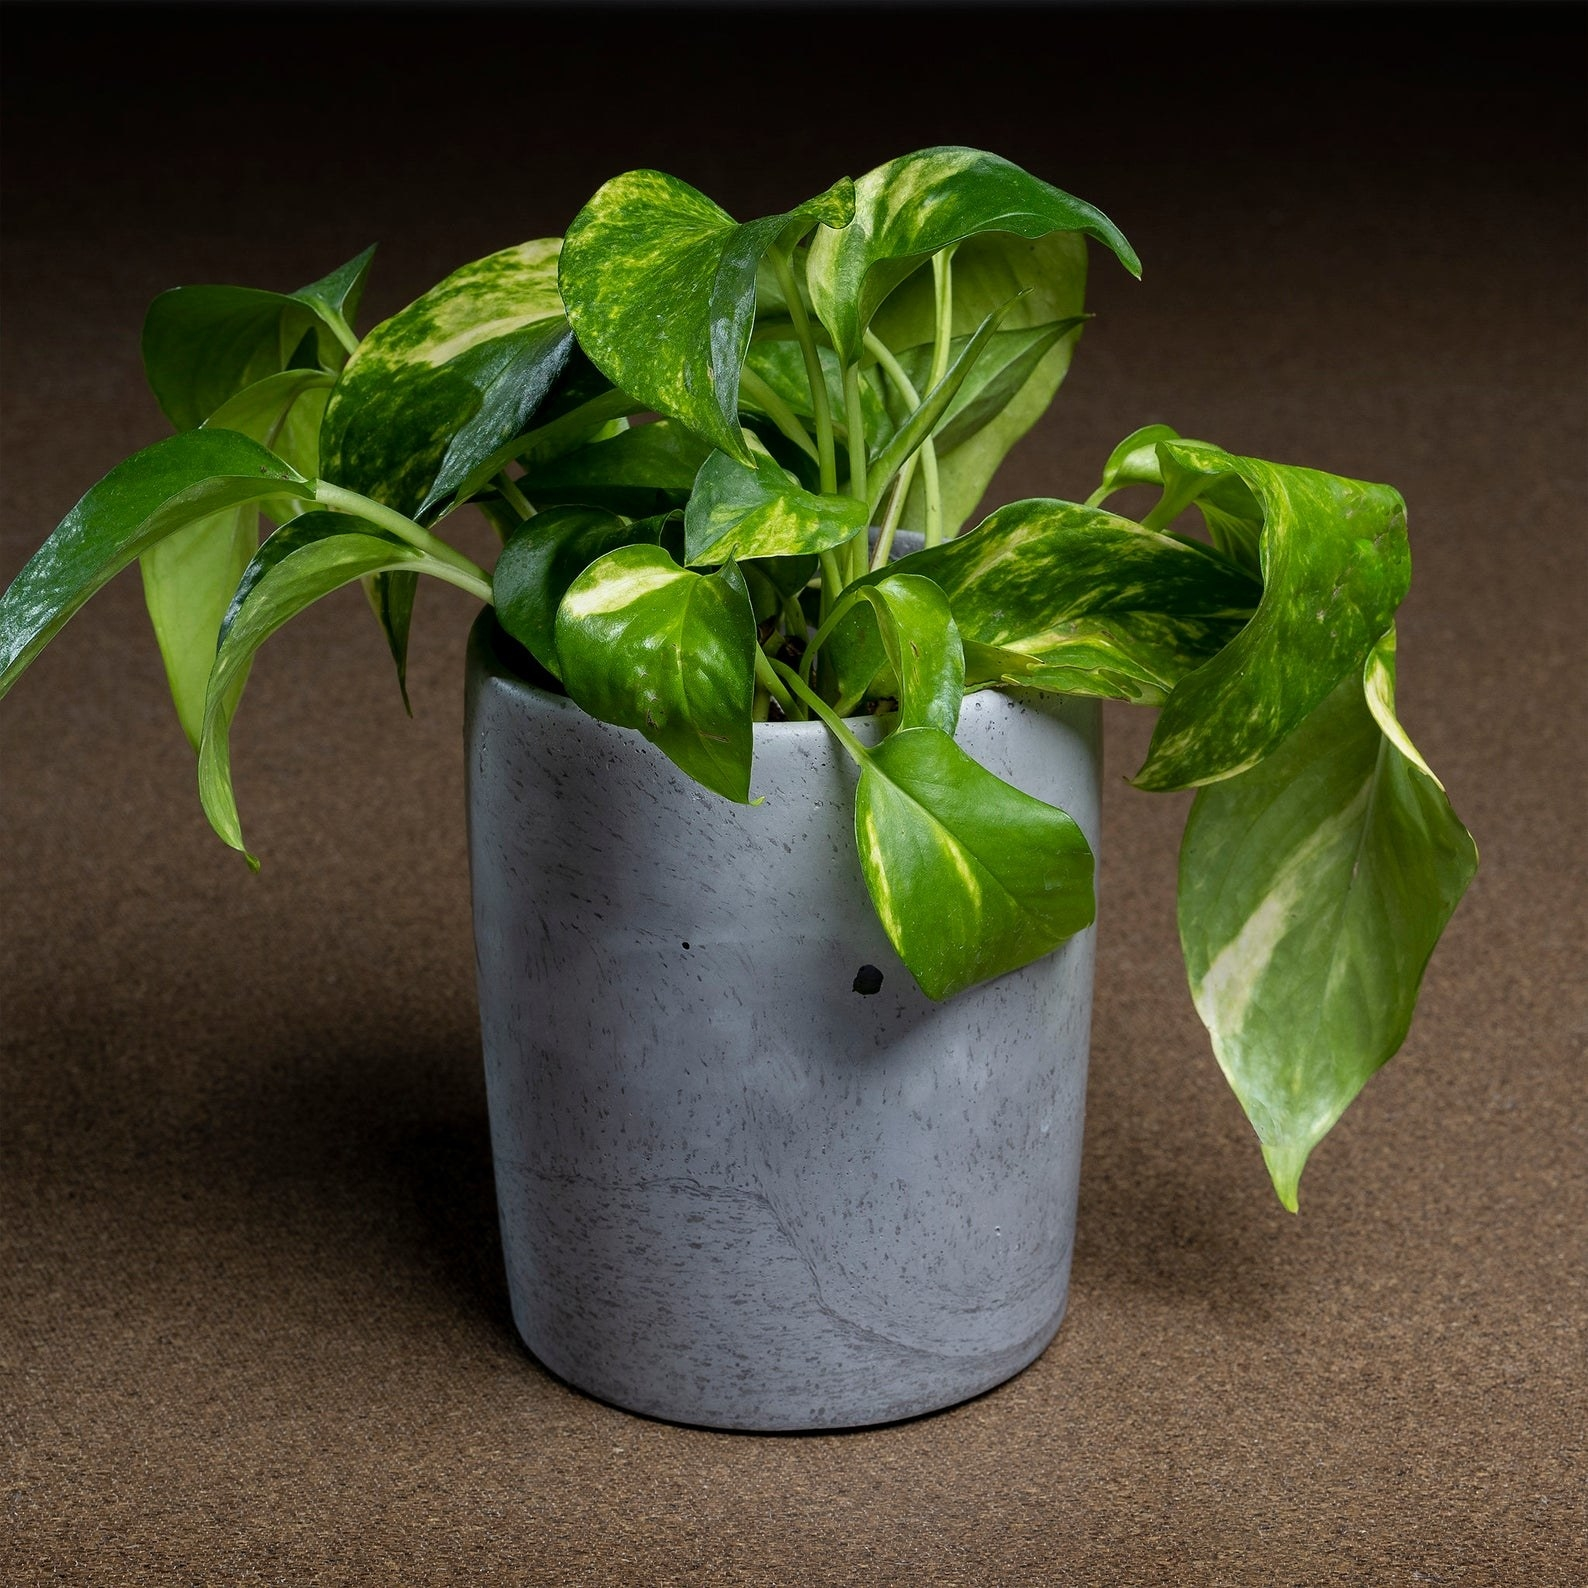 A round, light-gray, marbled planter with a plant inside